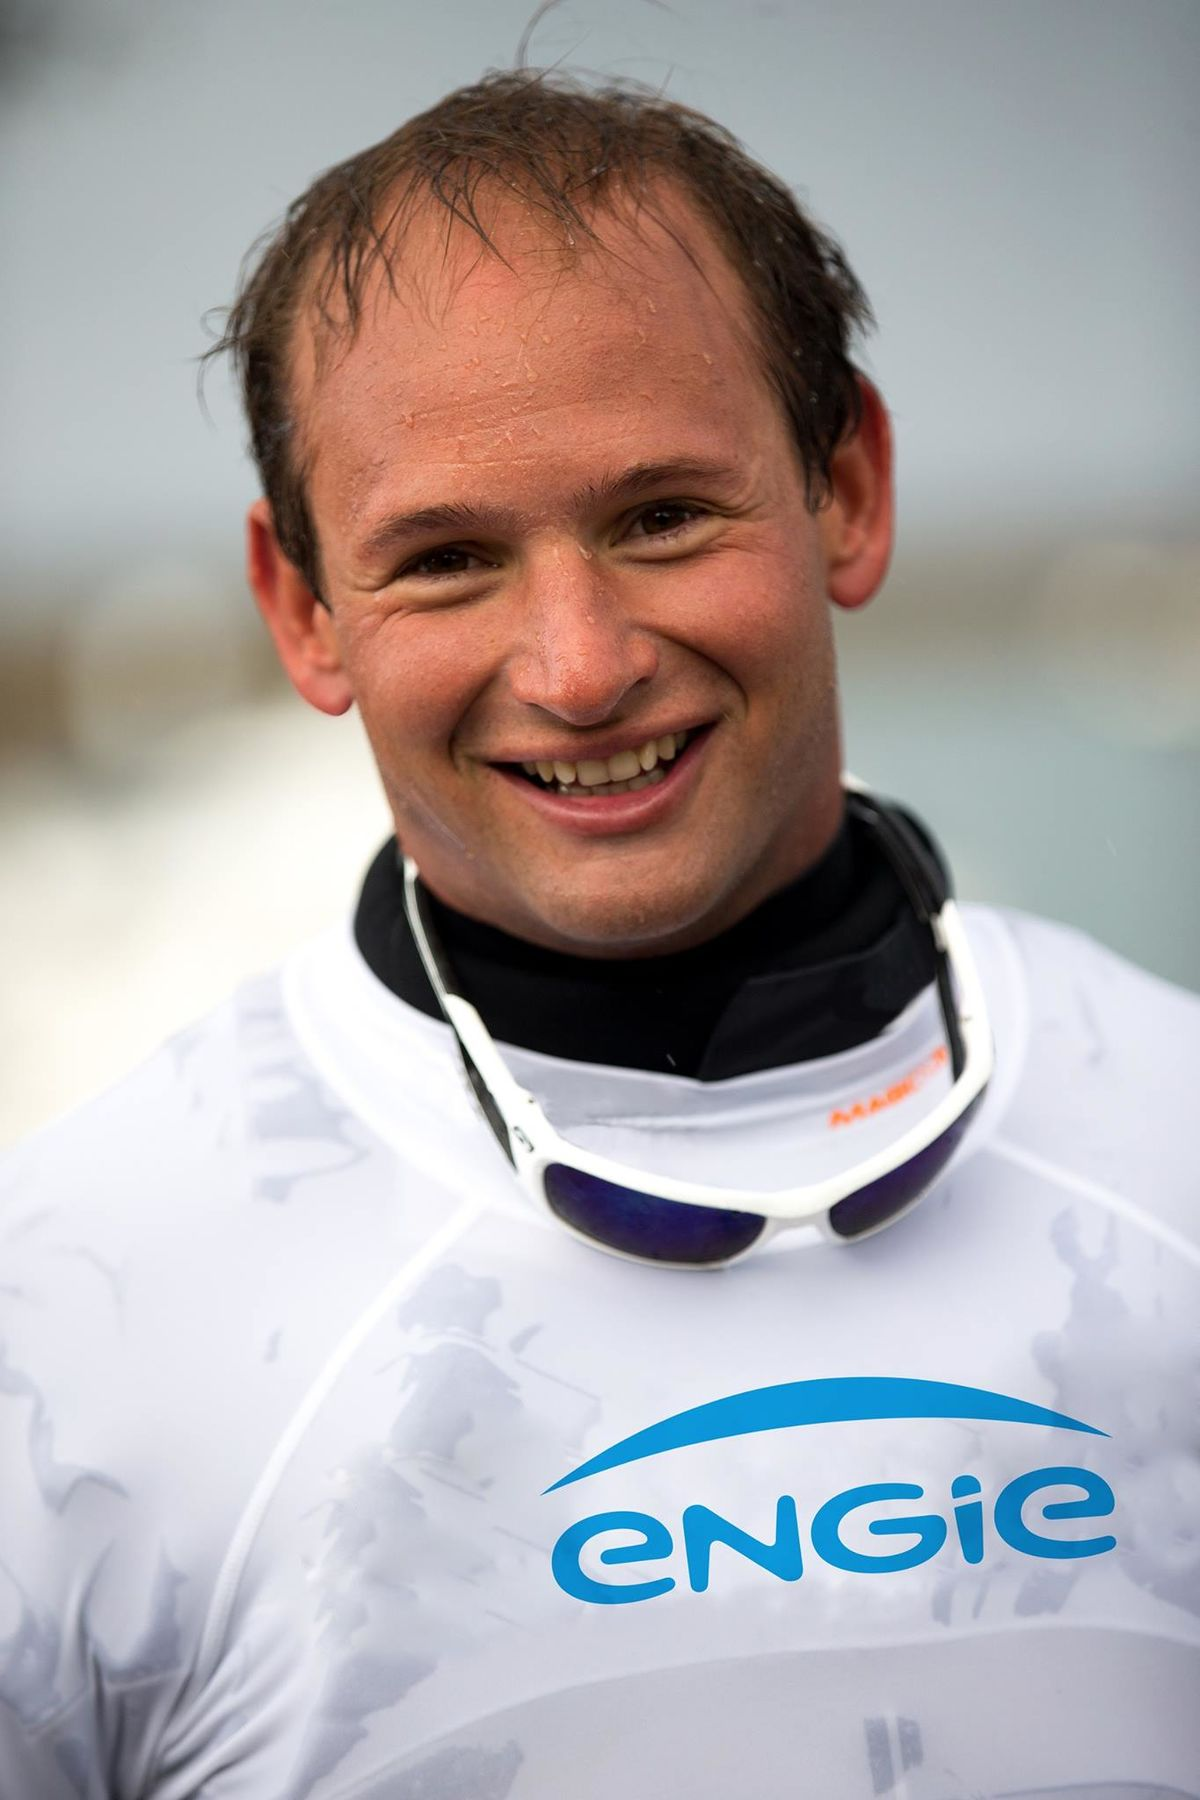 wechamp-sebastien-rogues-team-building-voile-athlete-de-haut-niveau